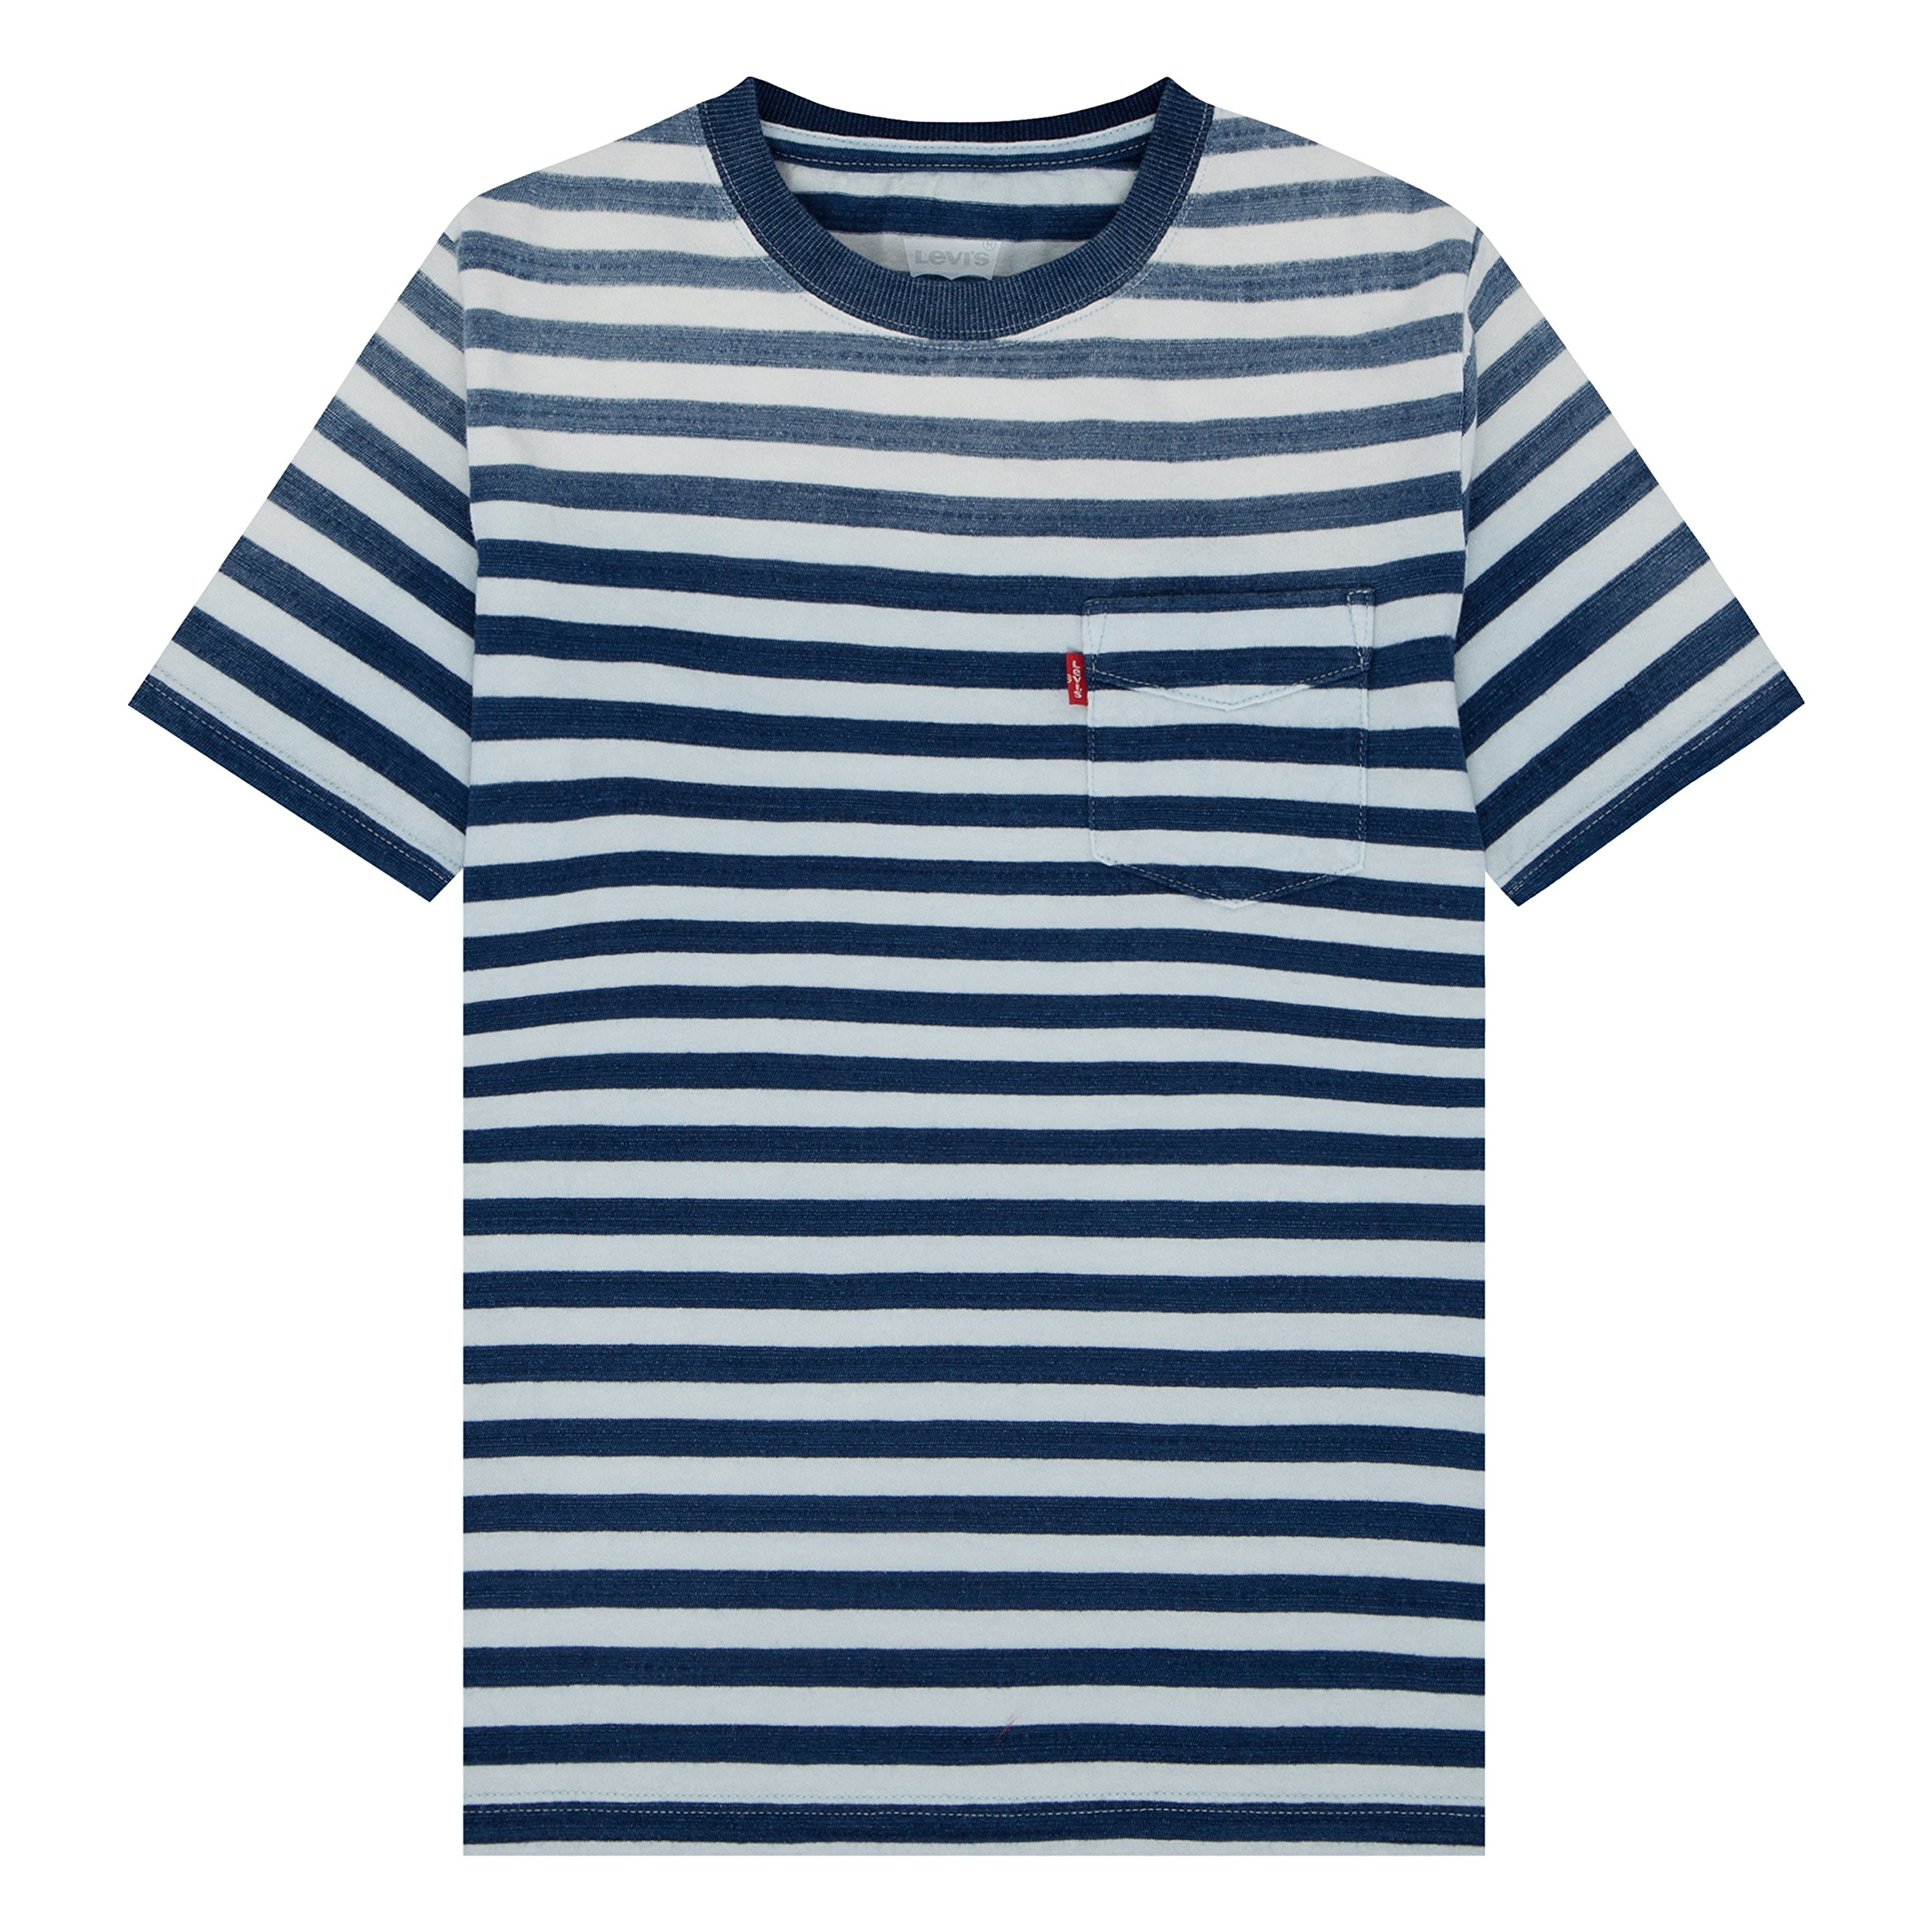 Levi's Big Boys' Basic T-Shirt, Indigo/Cloud Dancer, M